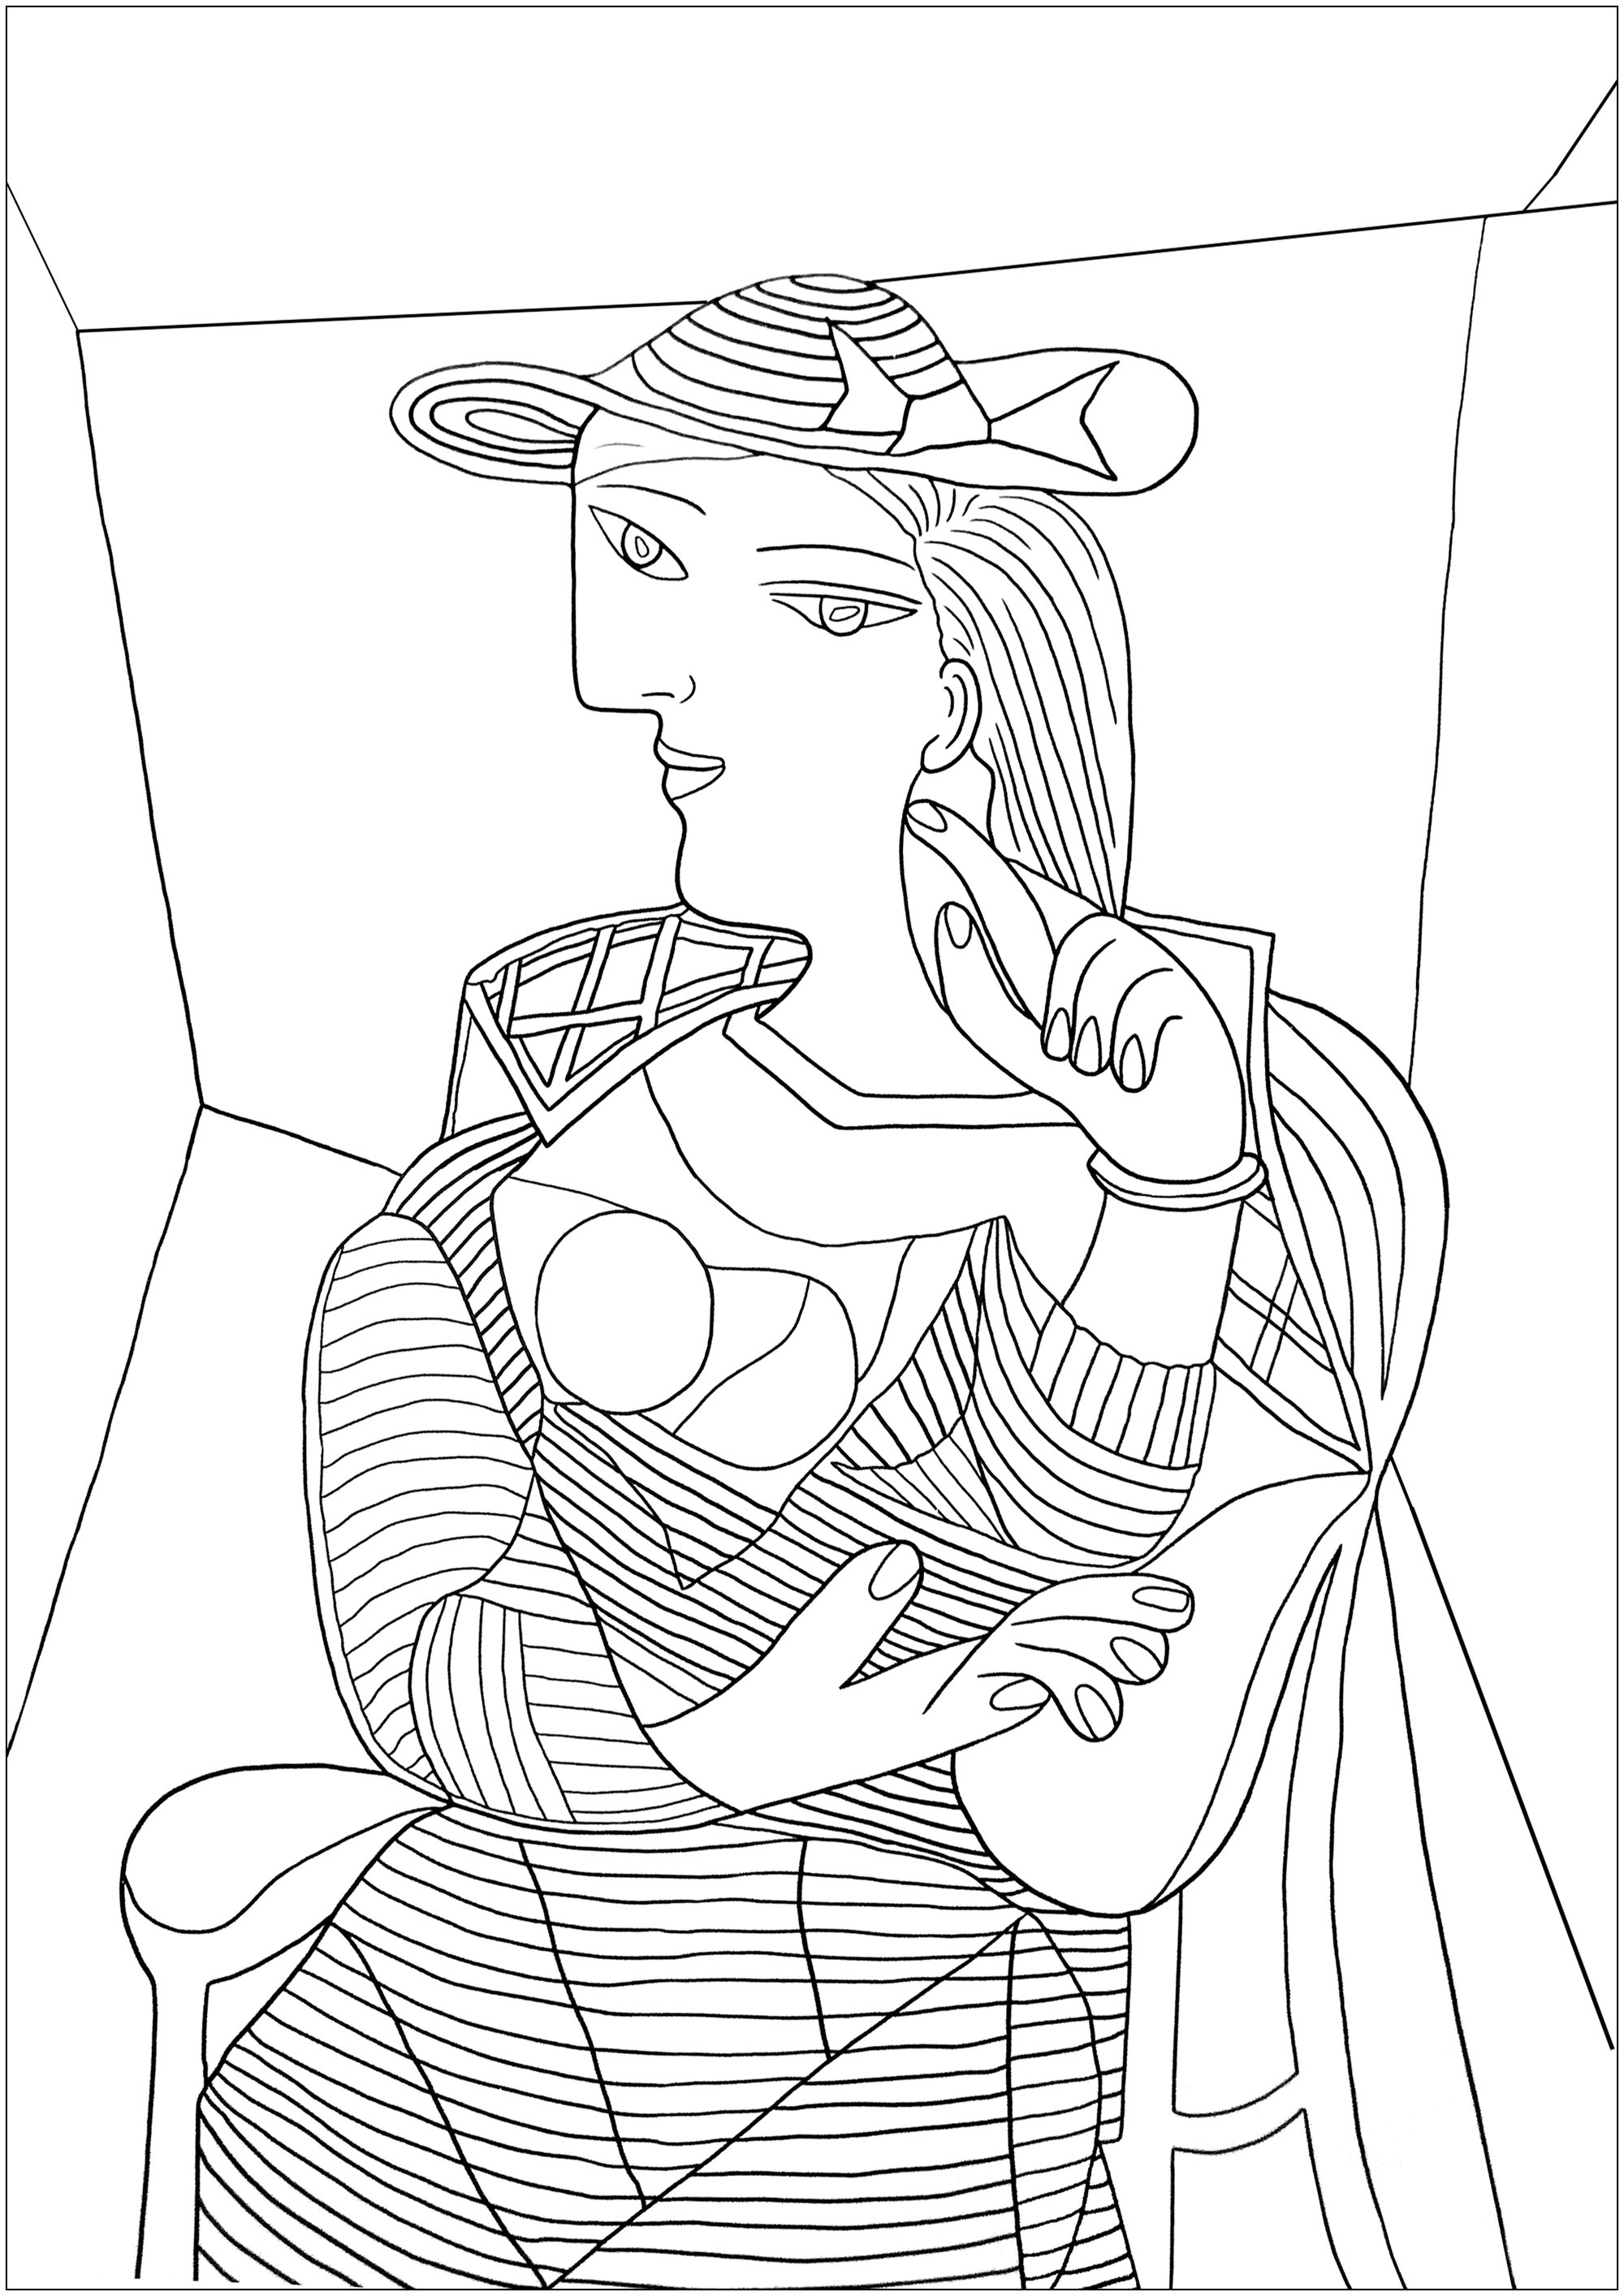 Coloring page created from Portrait of Marie Therese Walter by Pablo Picasso